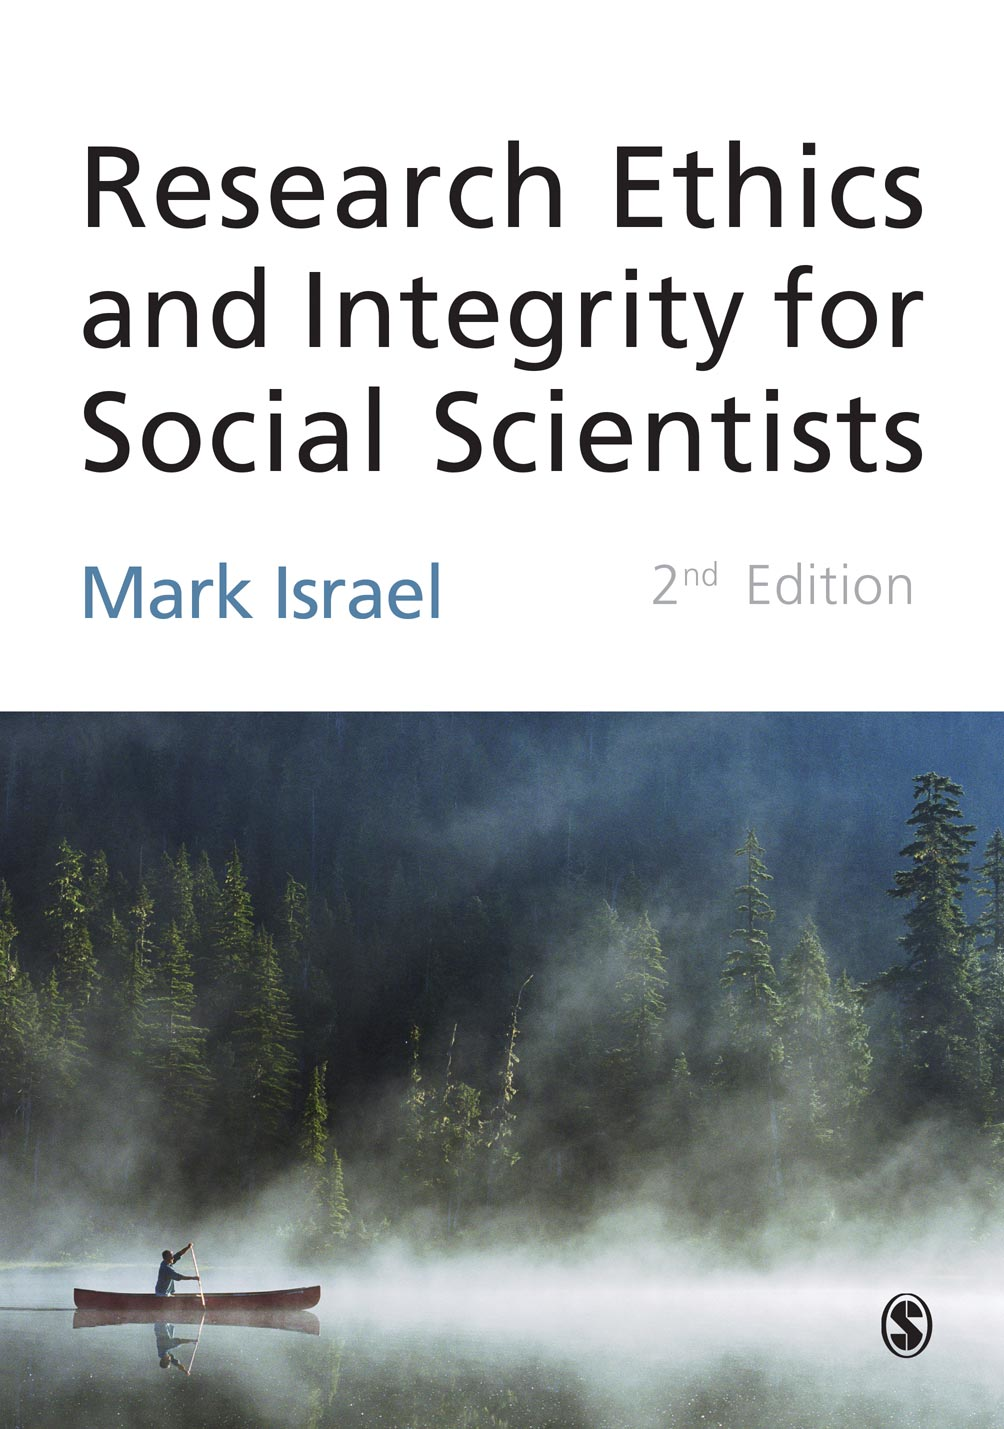 Research Ethics and Integrity for Social Scientists Beyond Regulatory Compliance